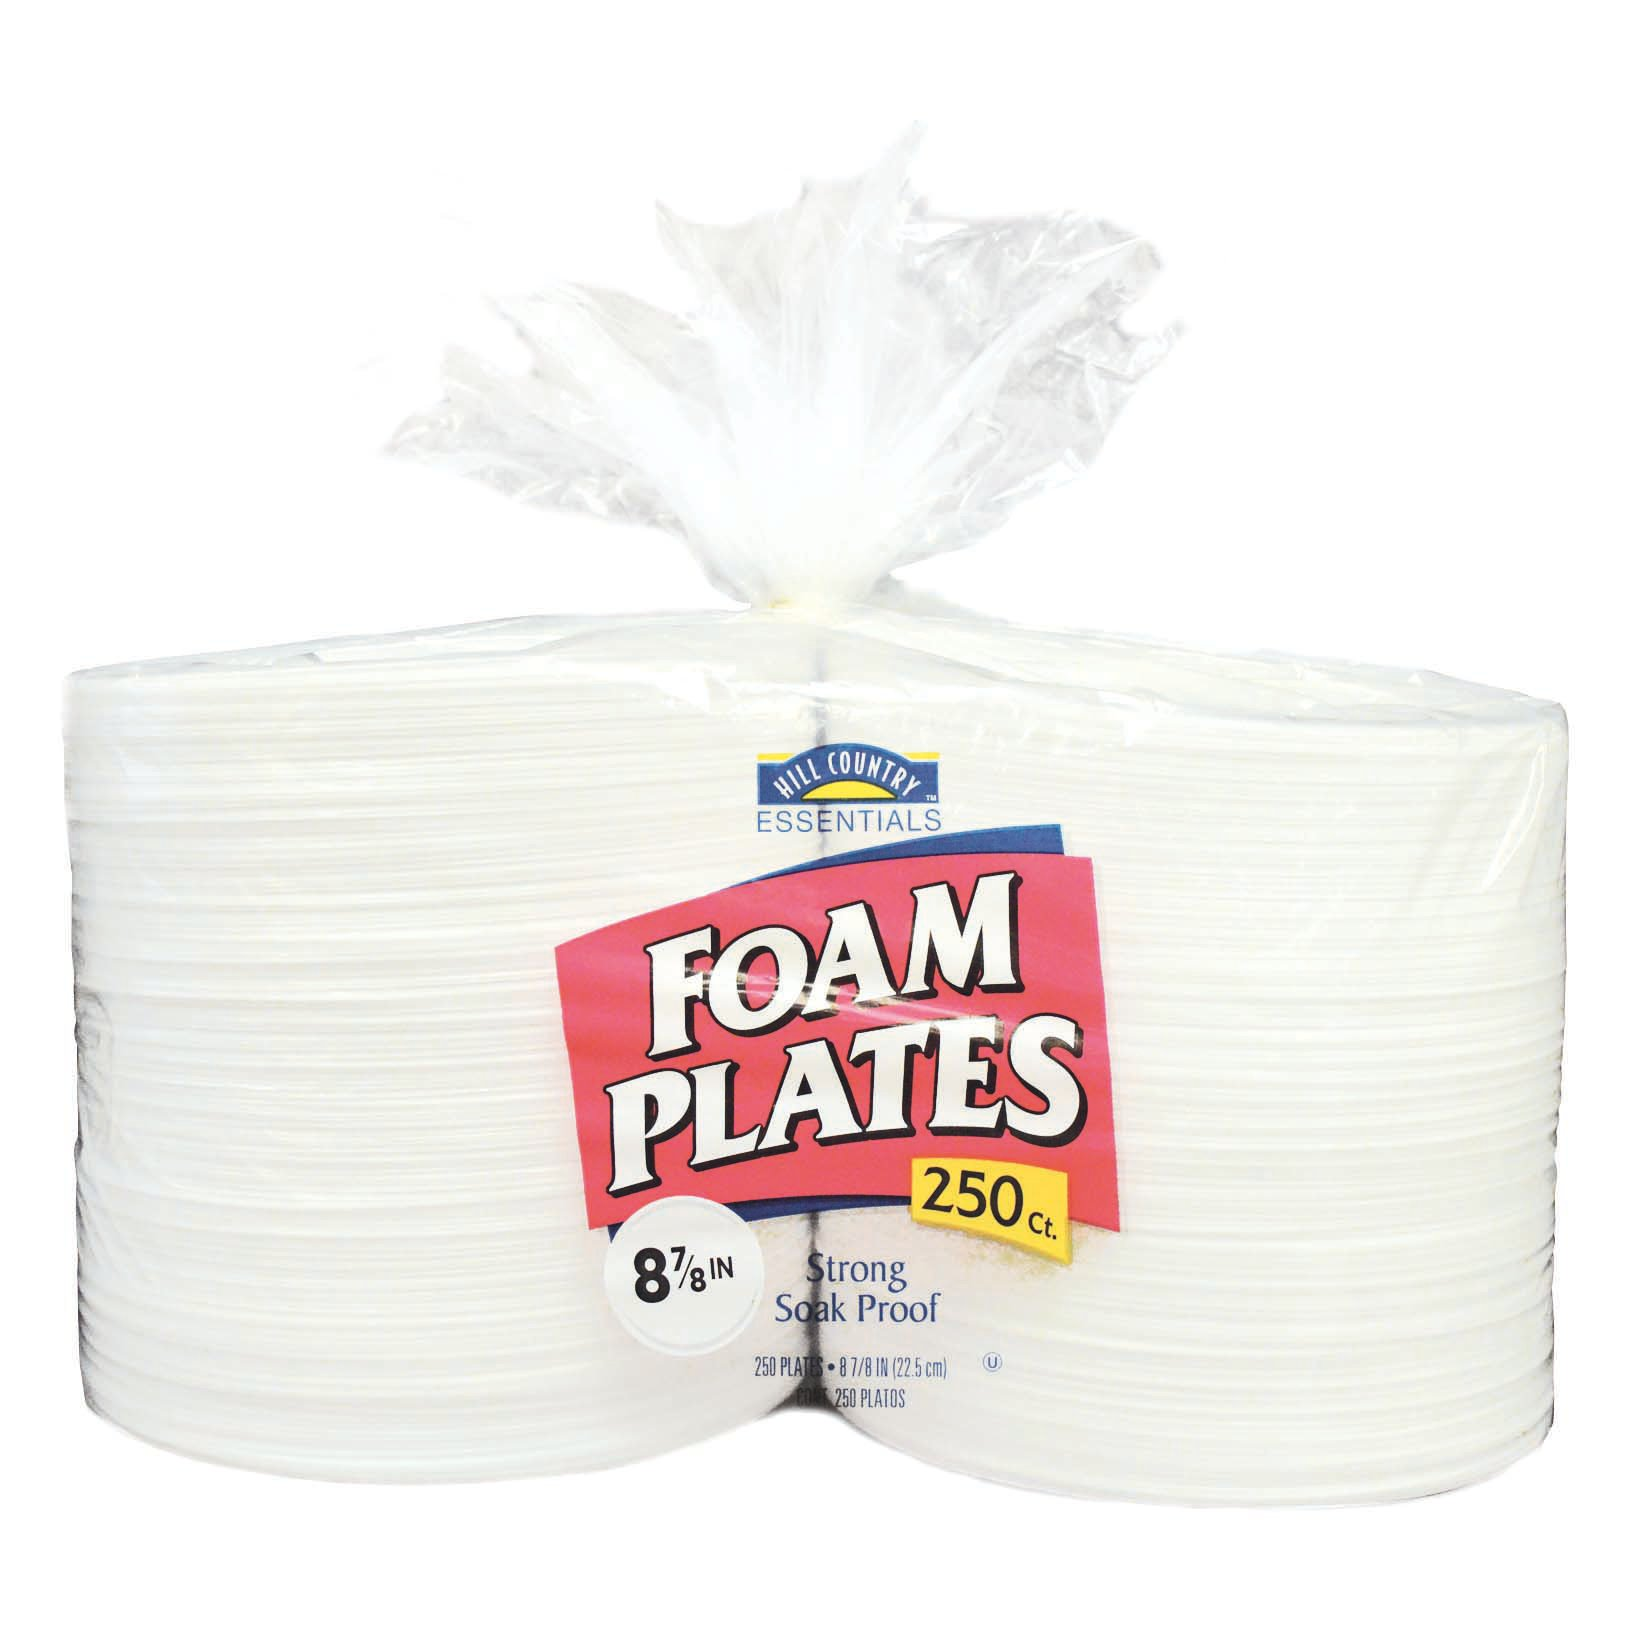 Hill Country Fare 9 Inch Everyday Foam Plates - Shop Disposable Tableware at HEB  sc 1 st  HEB.com & Hill Country Fare 9 Inch Everyday Foam Plates - Shop Disposable ...